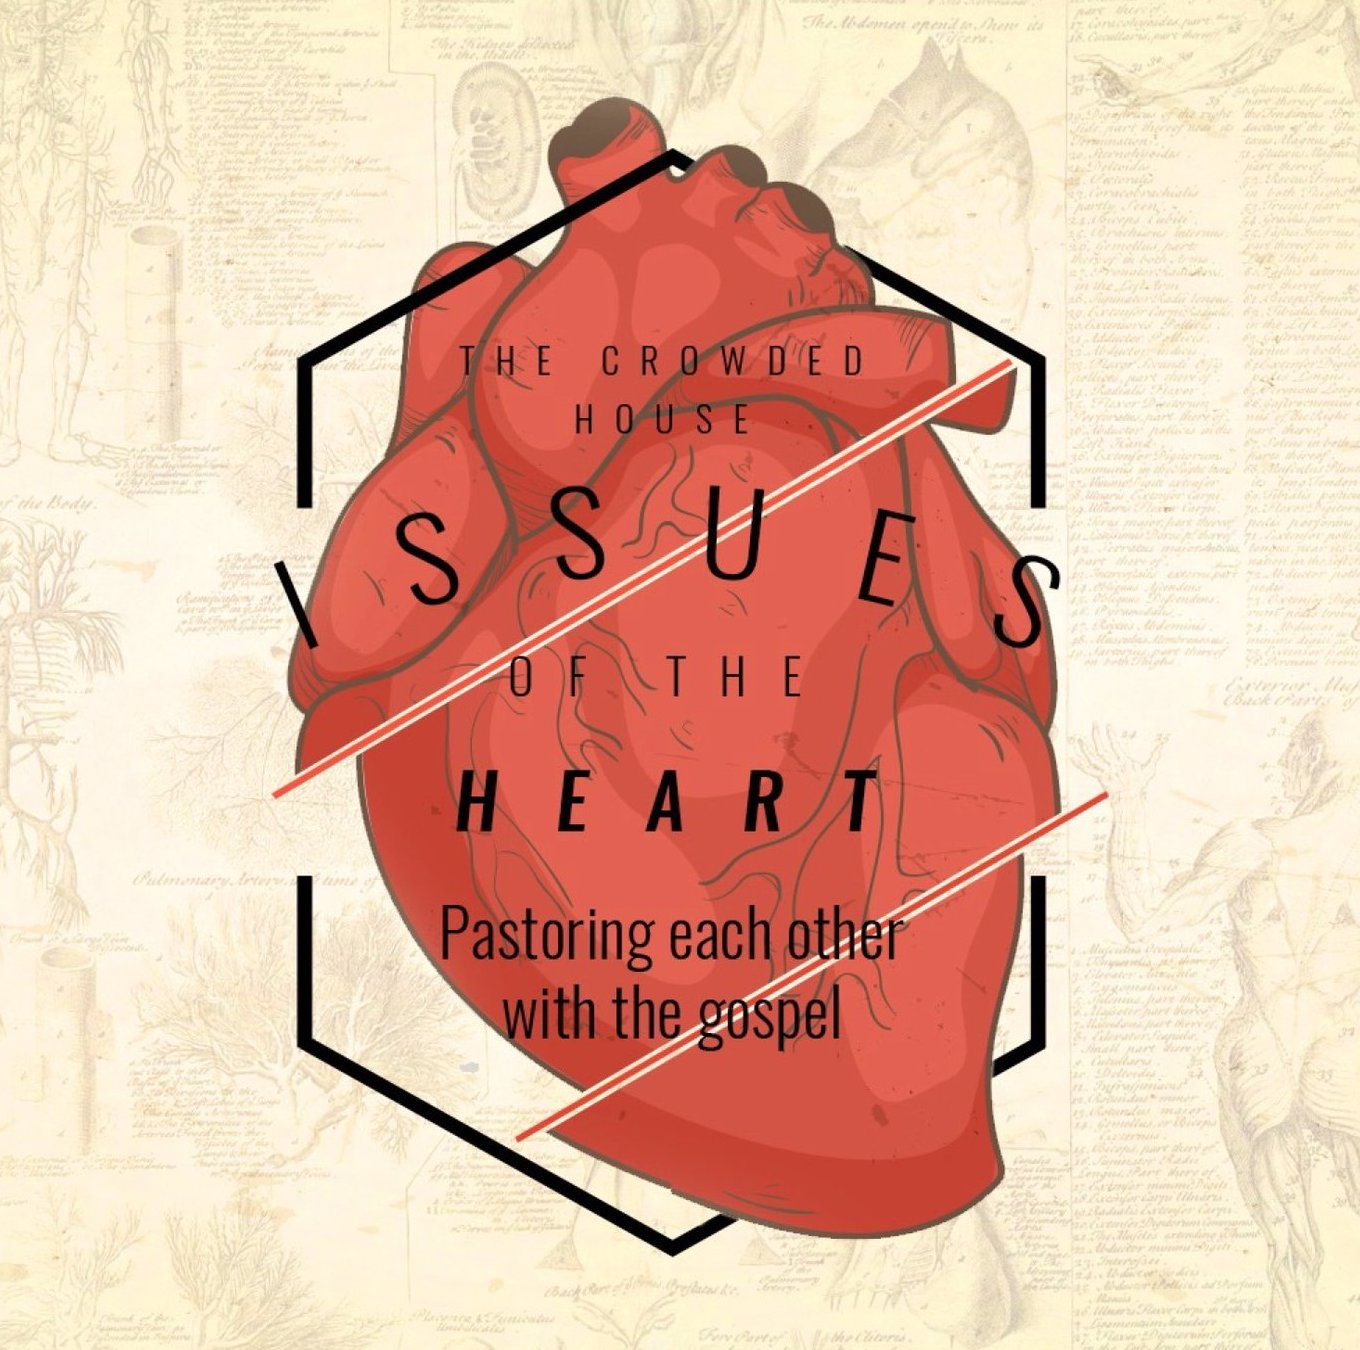 Issues of the Heart.jpg